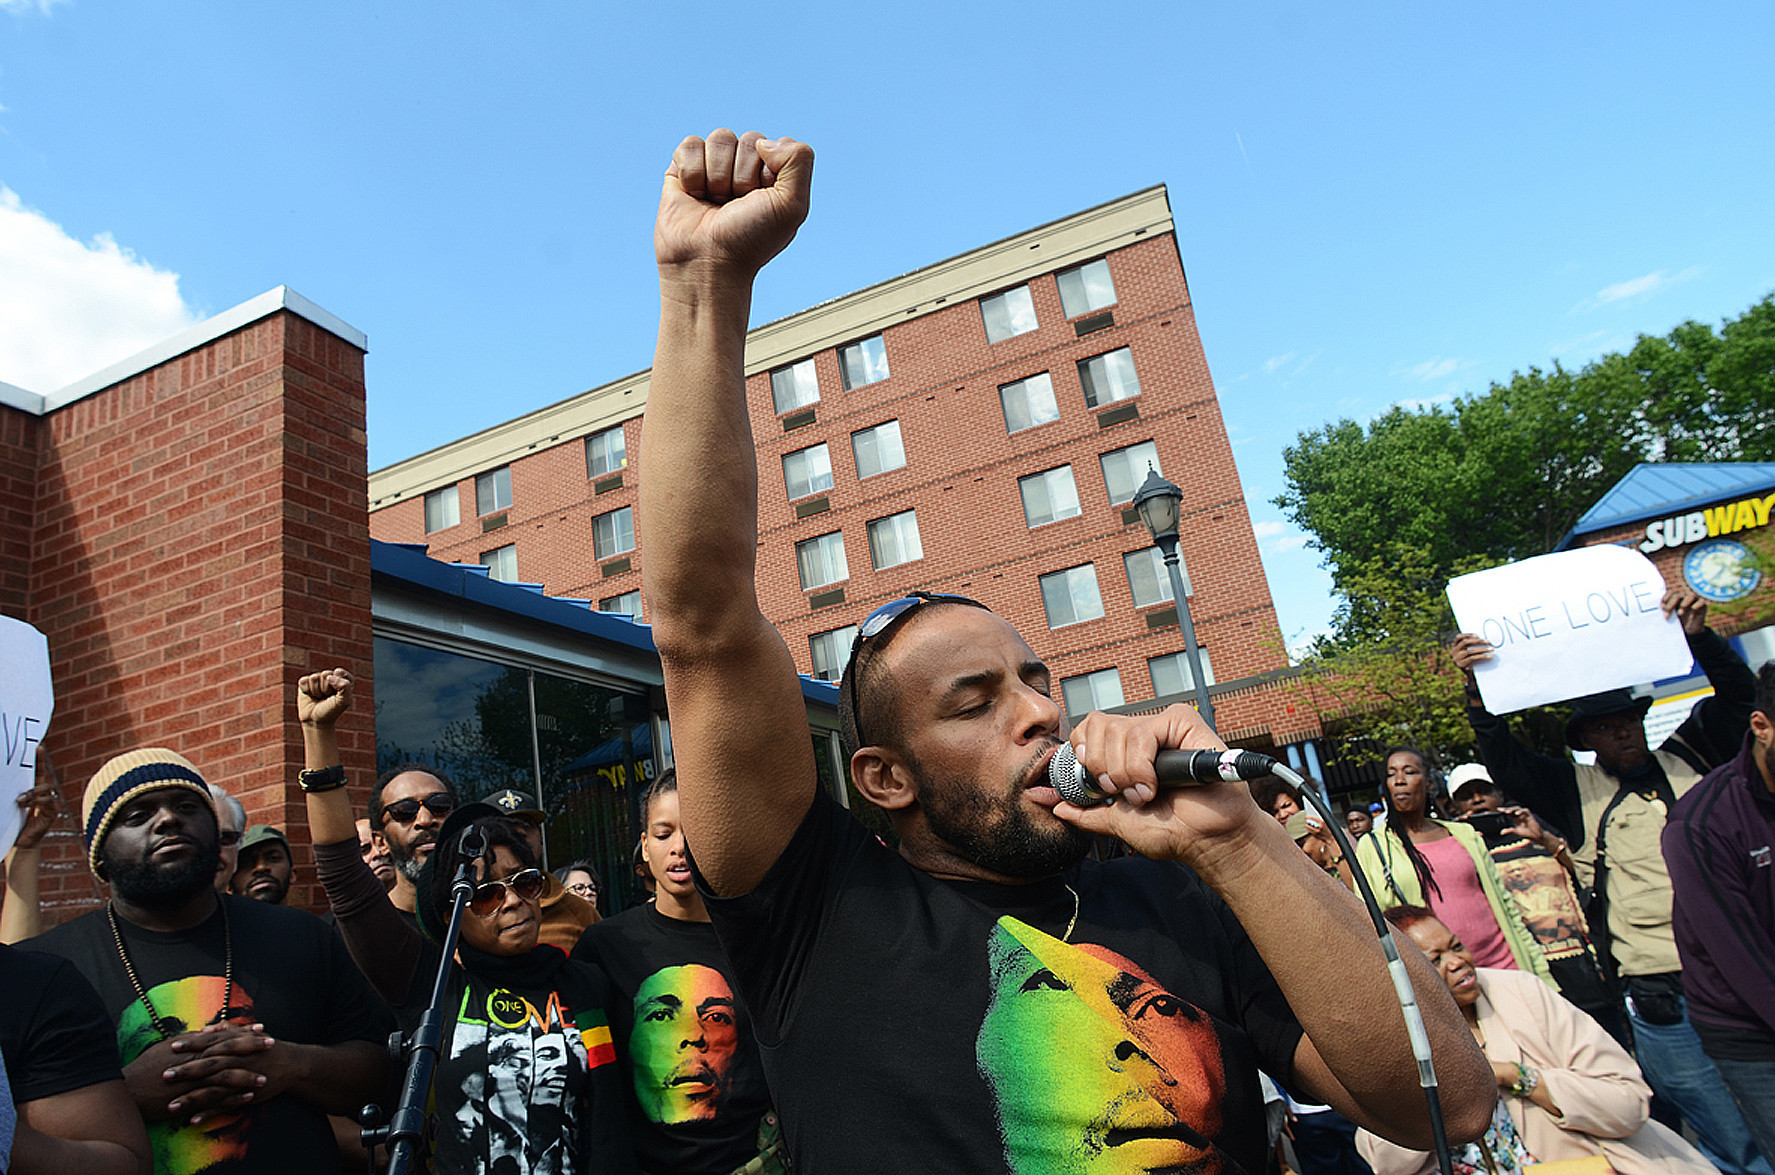 bcpnews-radio-free-baltimore-the-songs-that-soundtracked-the-baltimore-uprising-20150505.jpg